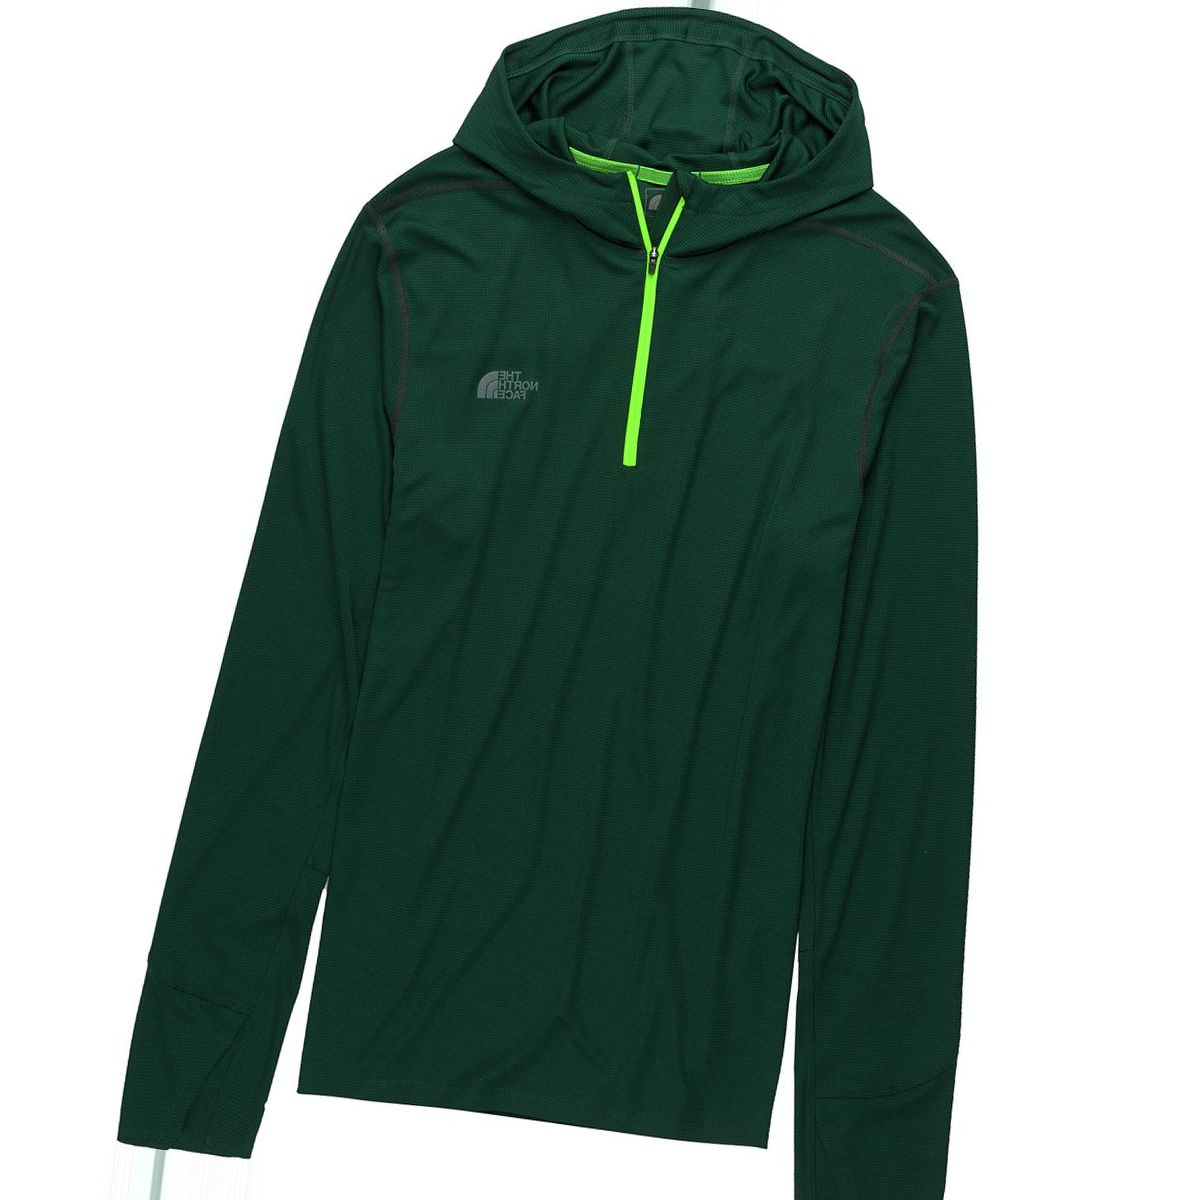 The North Face Kilolite 1/4-Zip Hoodie - Men's